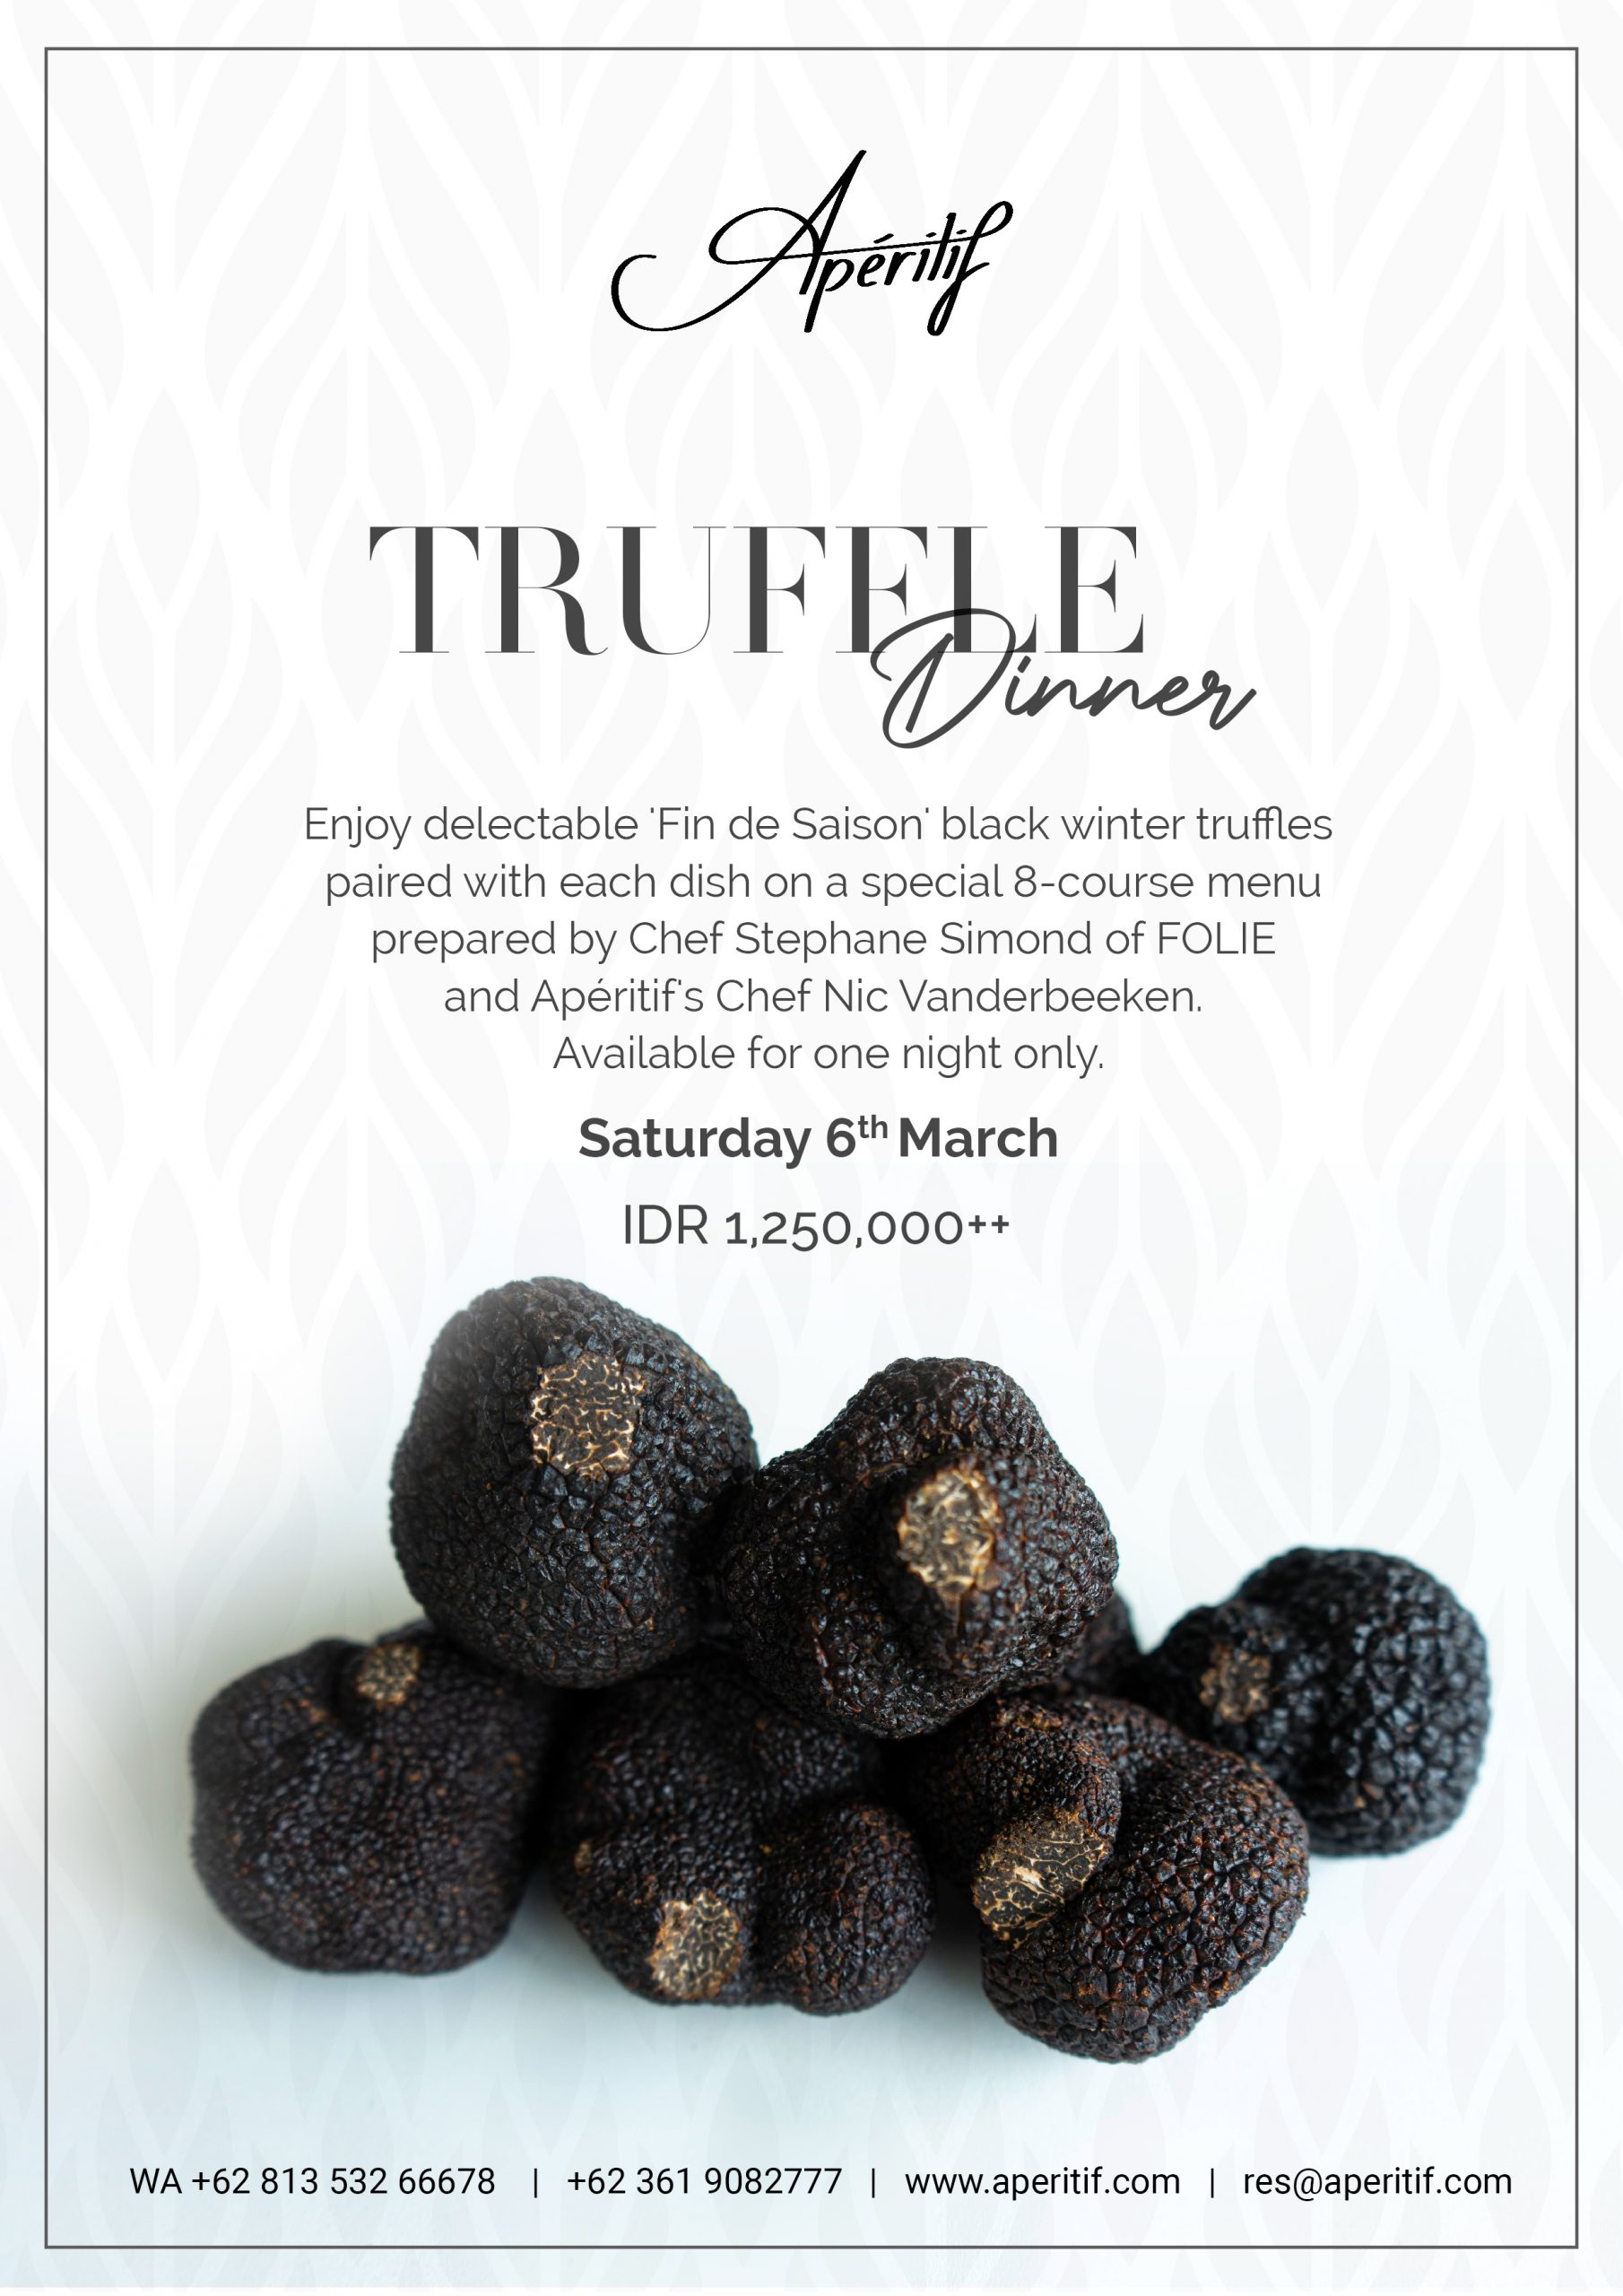 http://highend-traveller.com/relish-imported-fin-de-saison-black-winter-truffles-at-aperitifs-truffle-dinner-on-6-march/